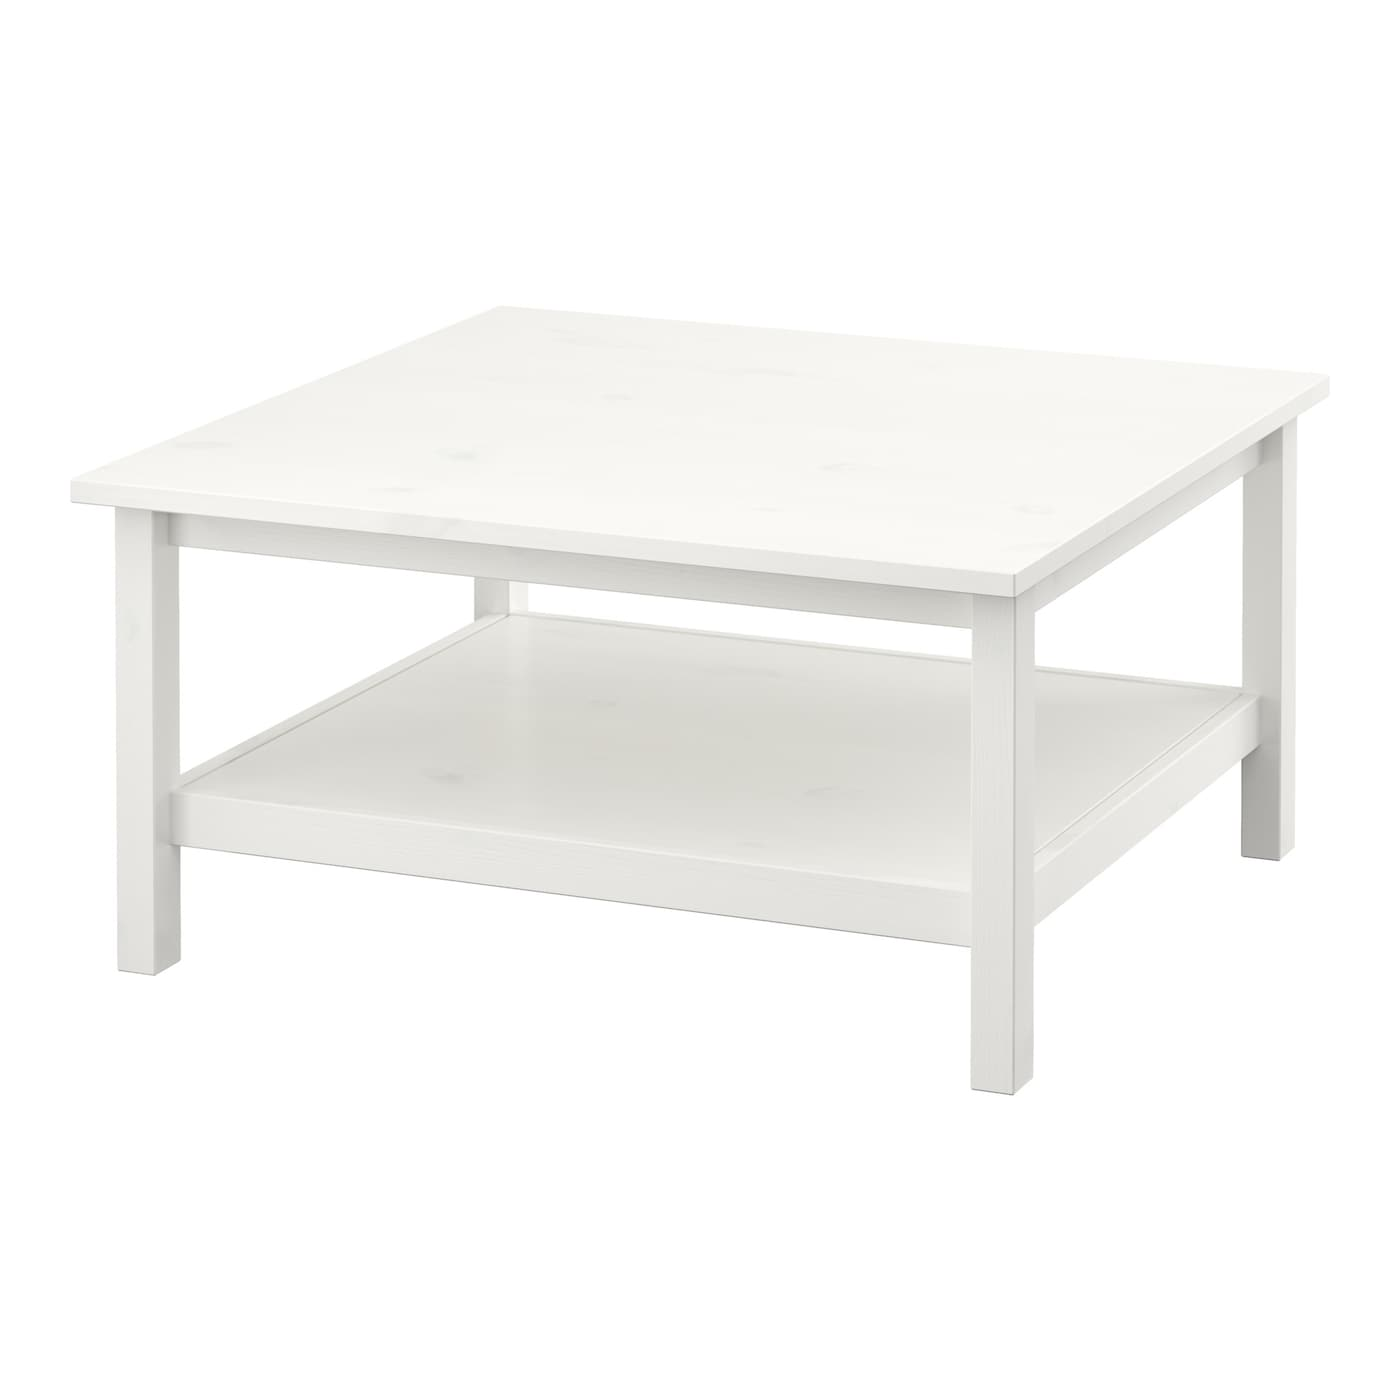 Coffee Table Ikea.Hemnes Coffee Table White Stain White